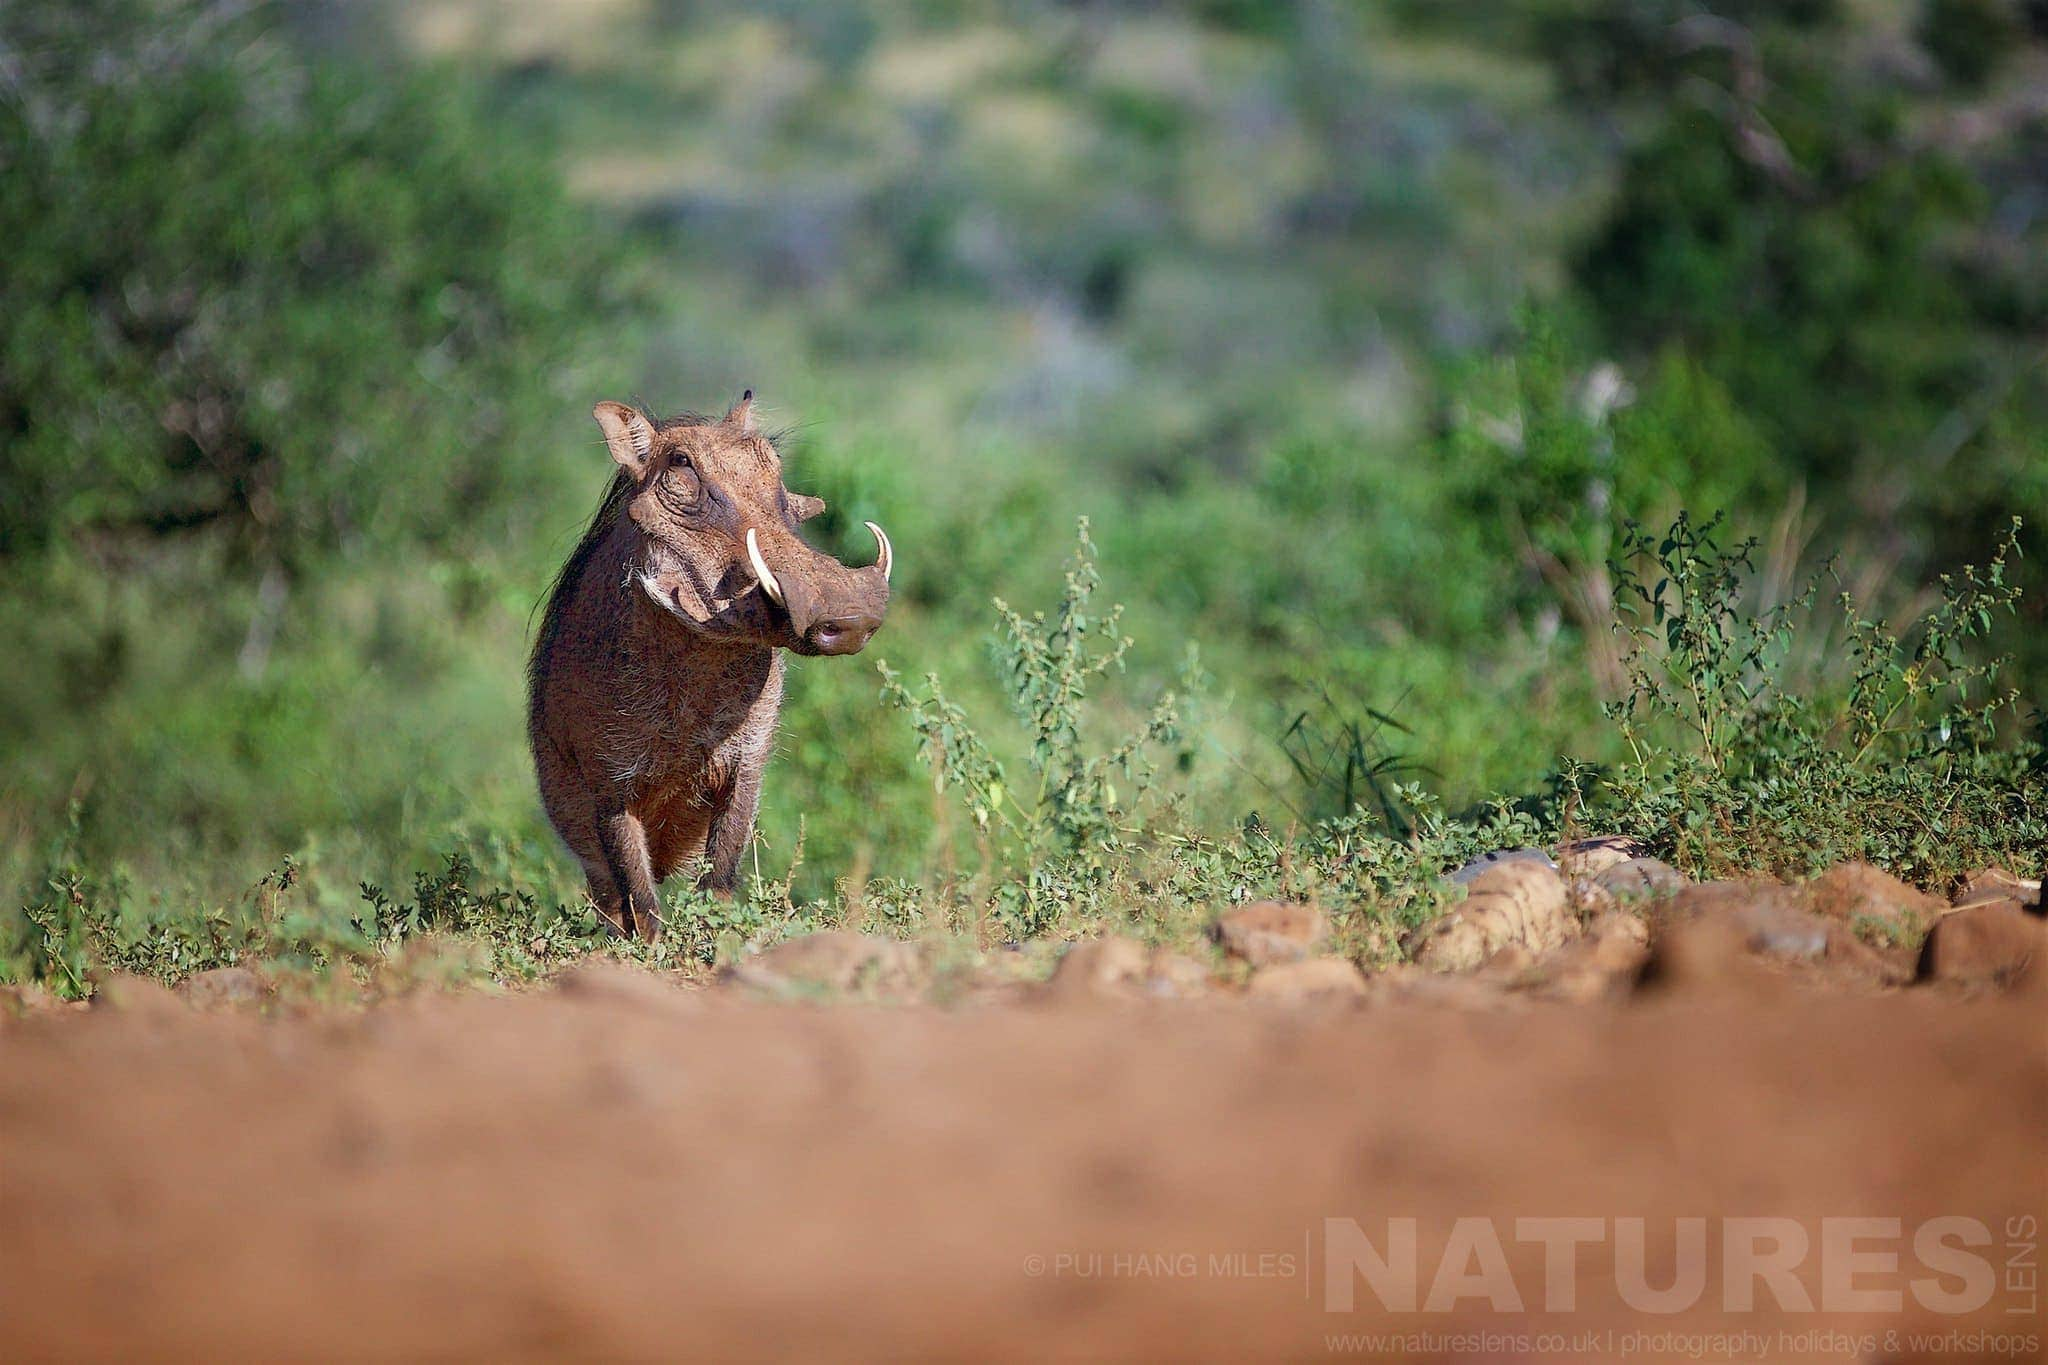 Warthog Sat By The Side Of The Road   Captured During The Natureslens South African Wildlife Zimanga Photography Holiday